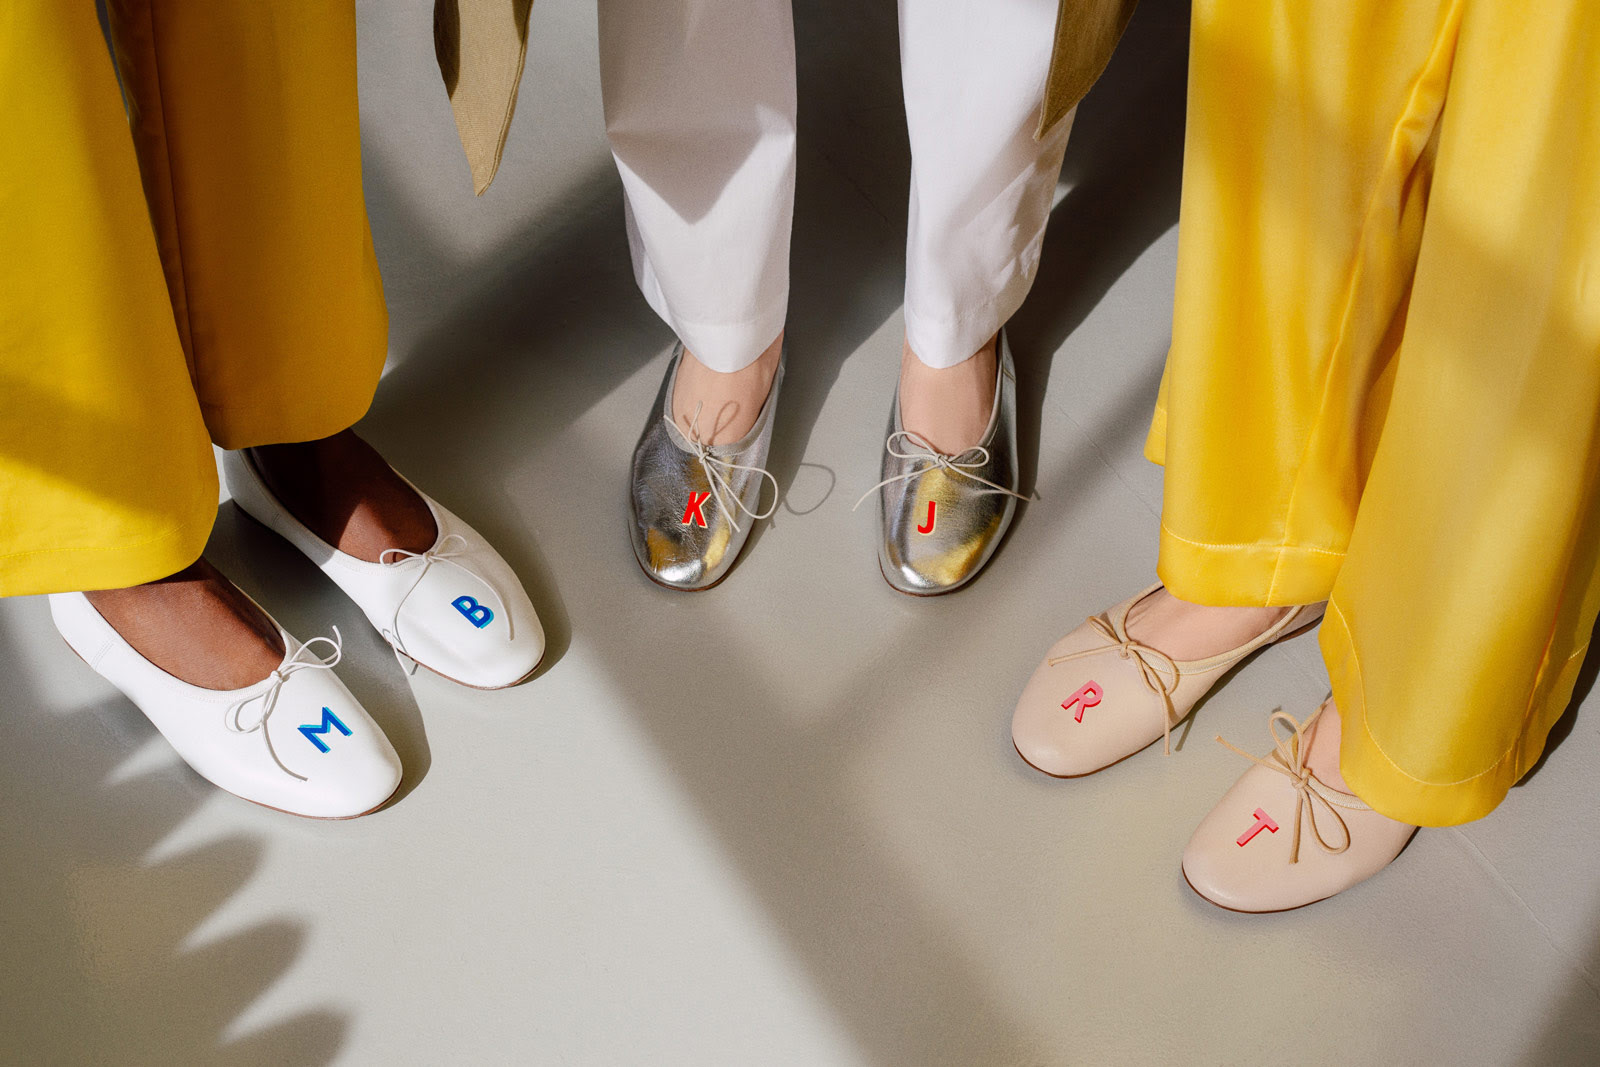 They're ready for an encore - Meet the shoe that's almost sold out.